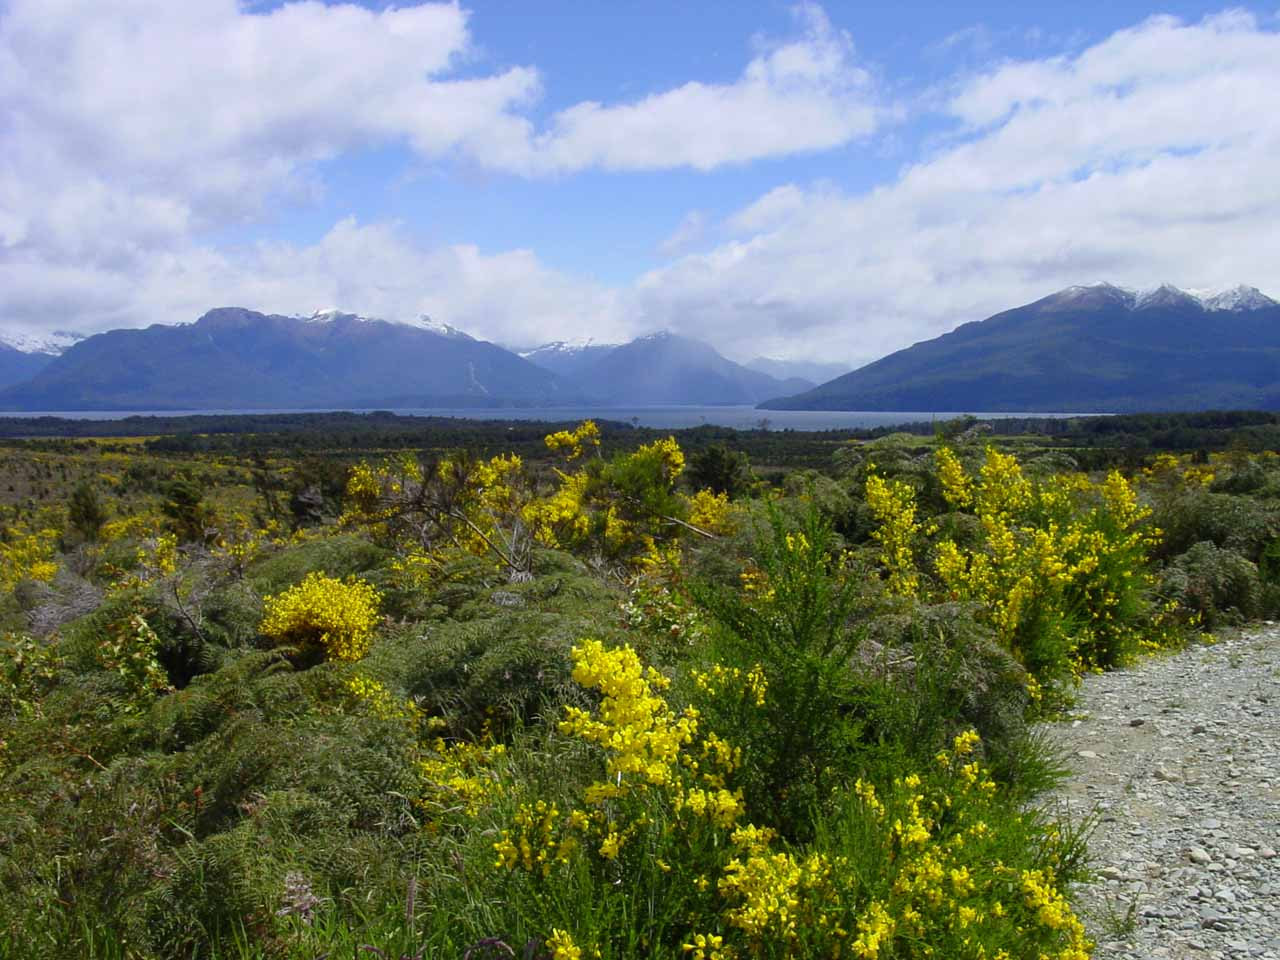 This view towards Lake Te Anau over some blooming wildflowers was just north of the town of Te Anau along the Milford Highway